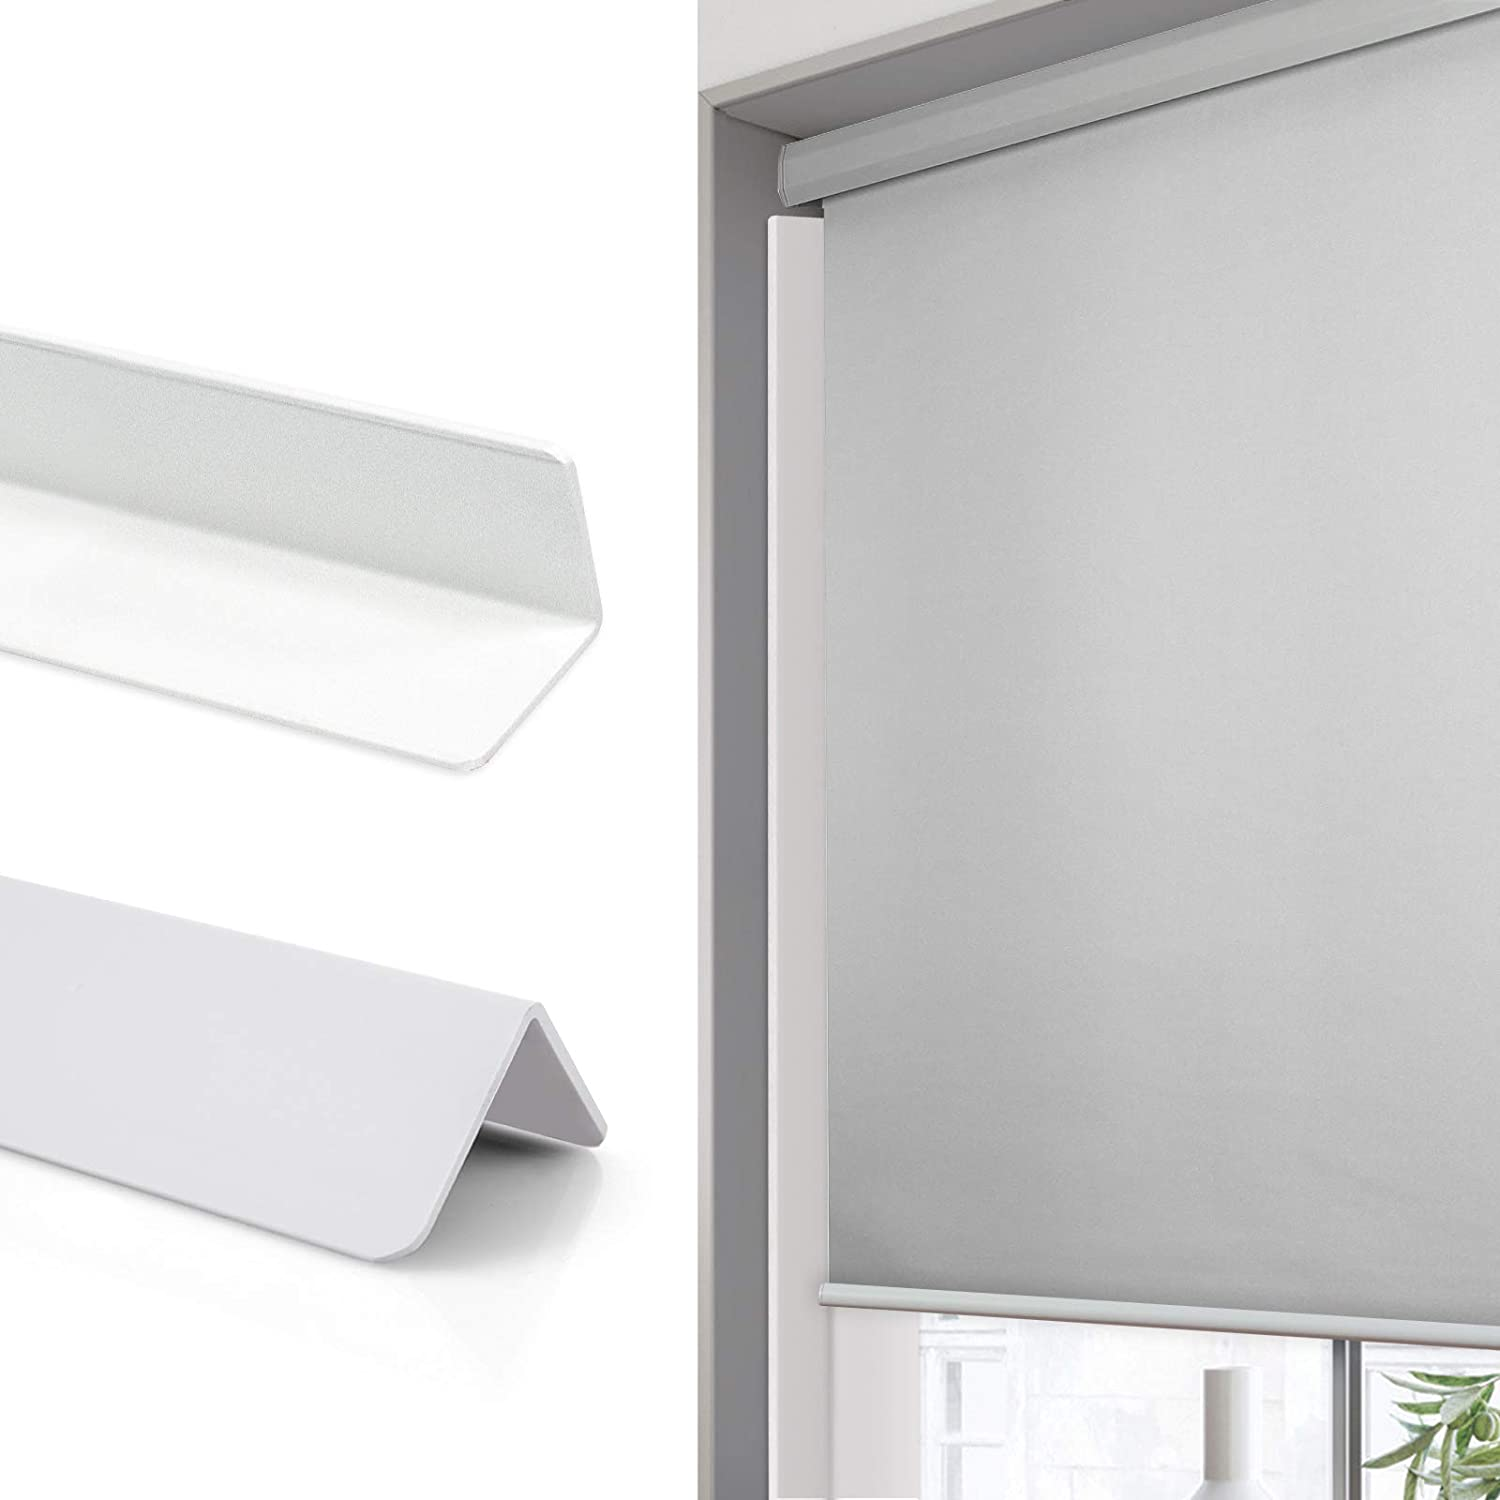 Graywind Light Blockers for Shades Block Sunlight Along Two Sides of Blackout Shades Blinds 2 Pcs